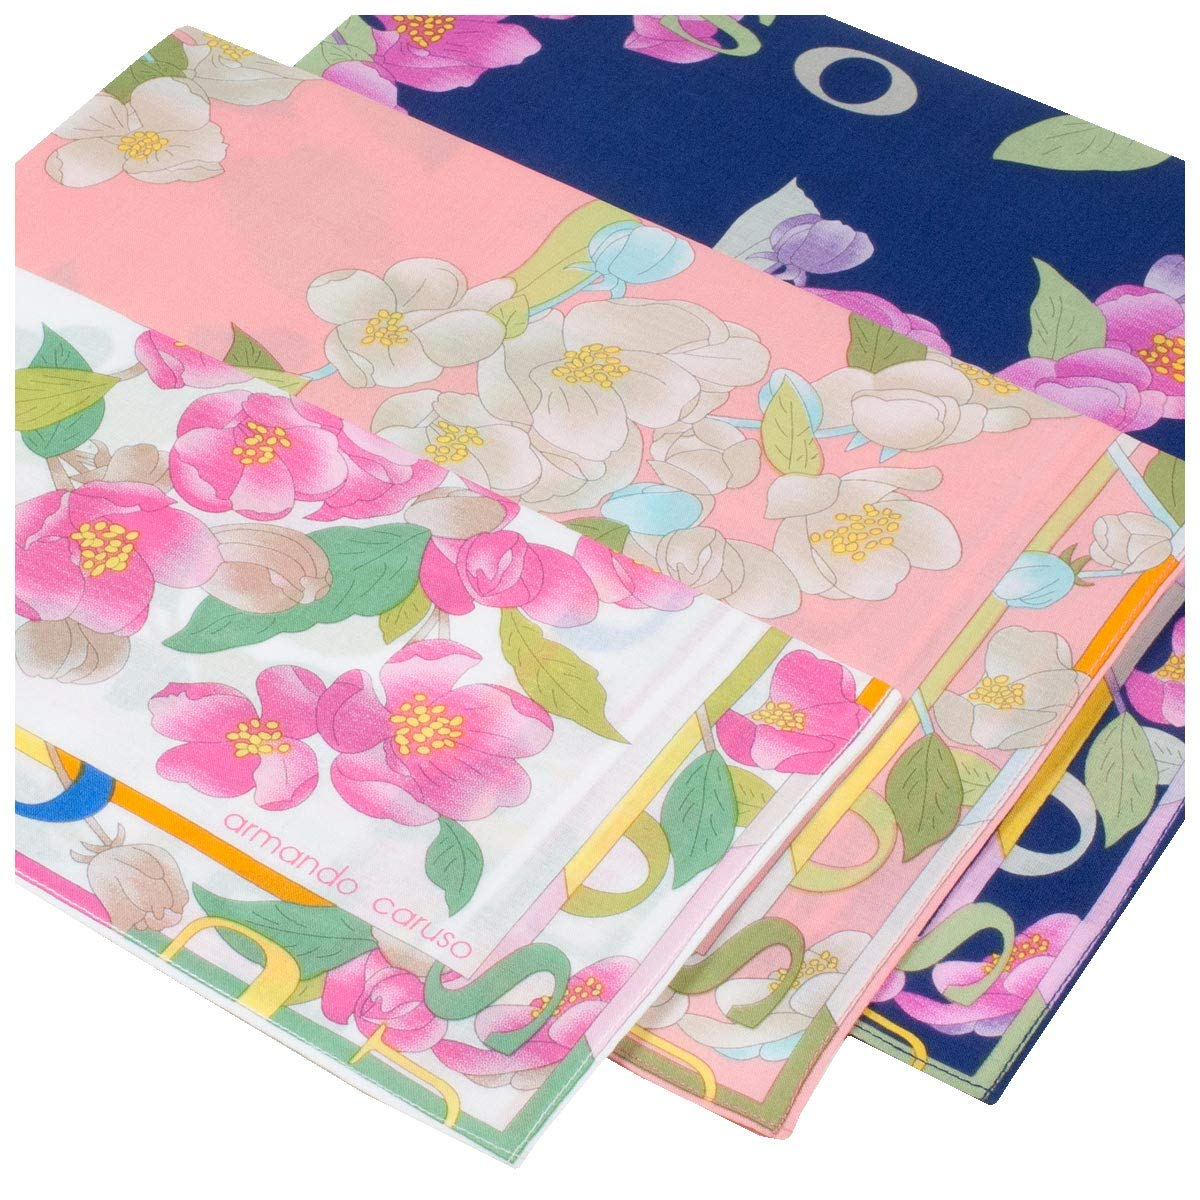 "' Tonami ' Flowered Hankerchiefs - 17"" Square - 3 Units"